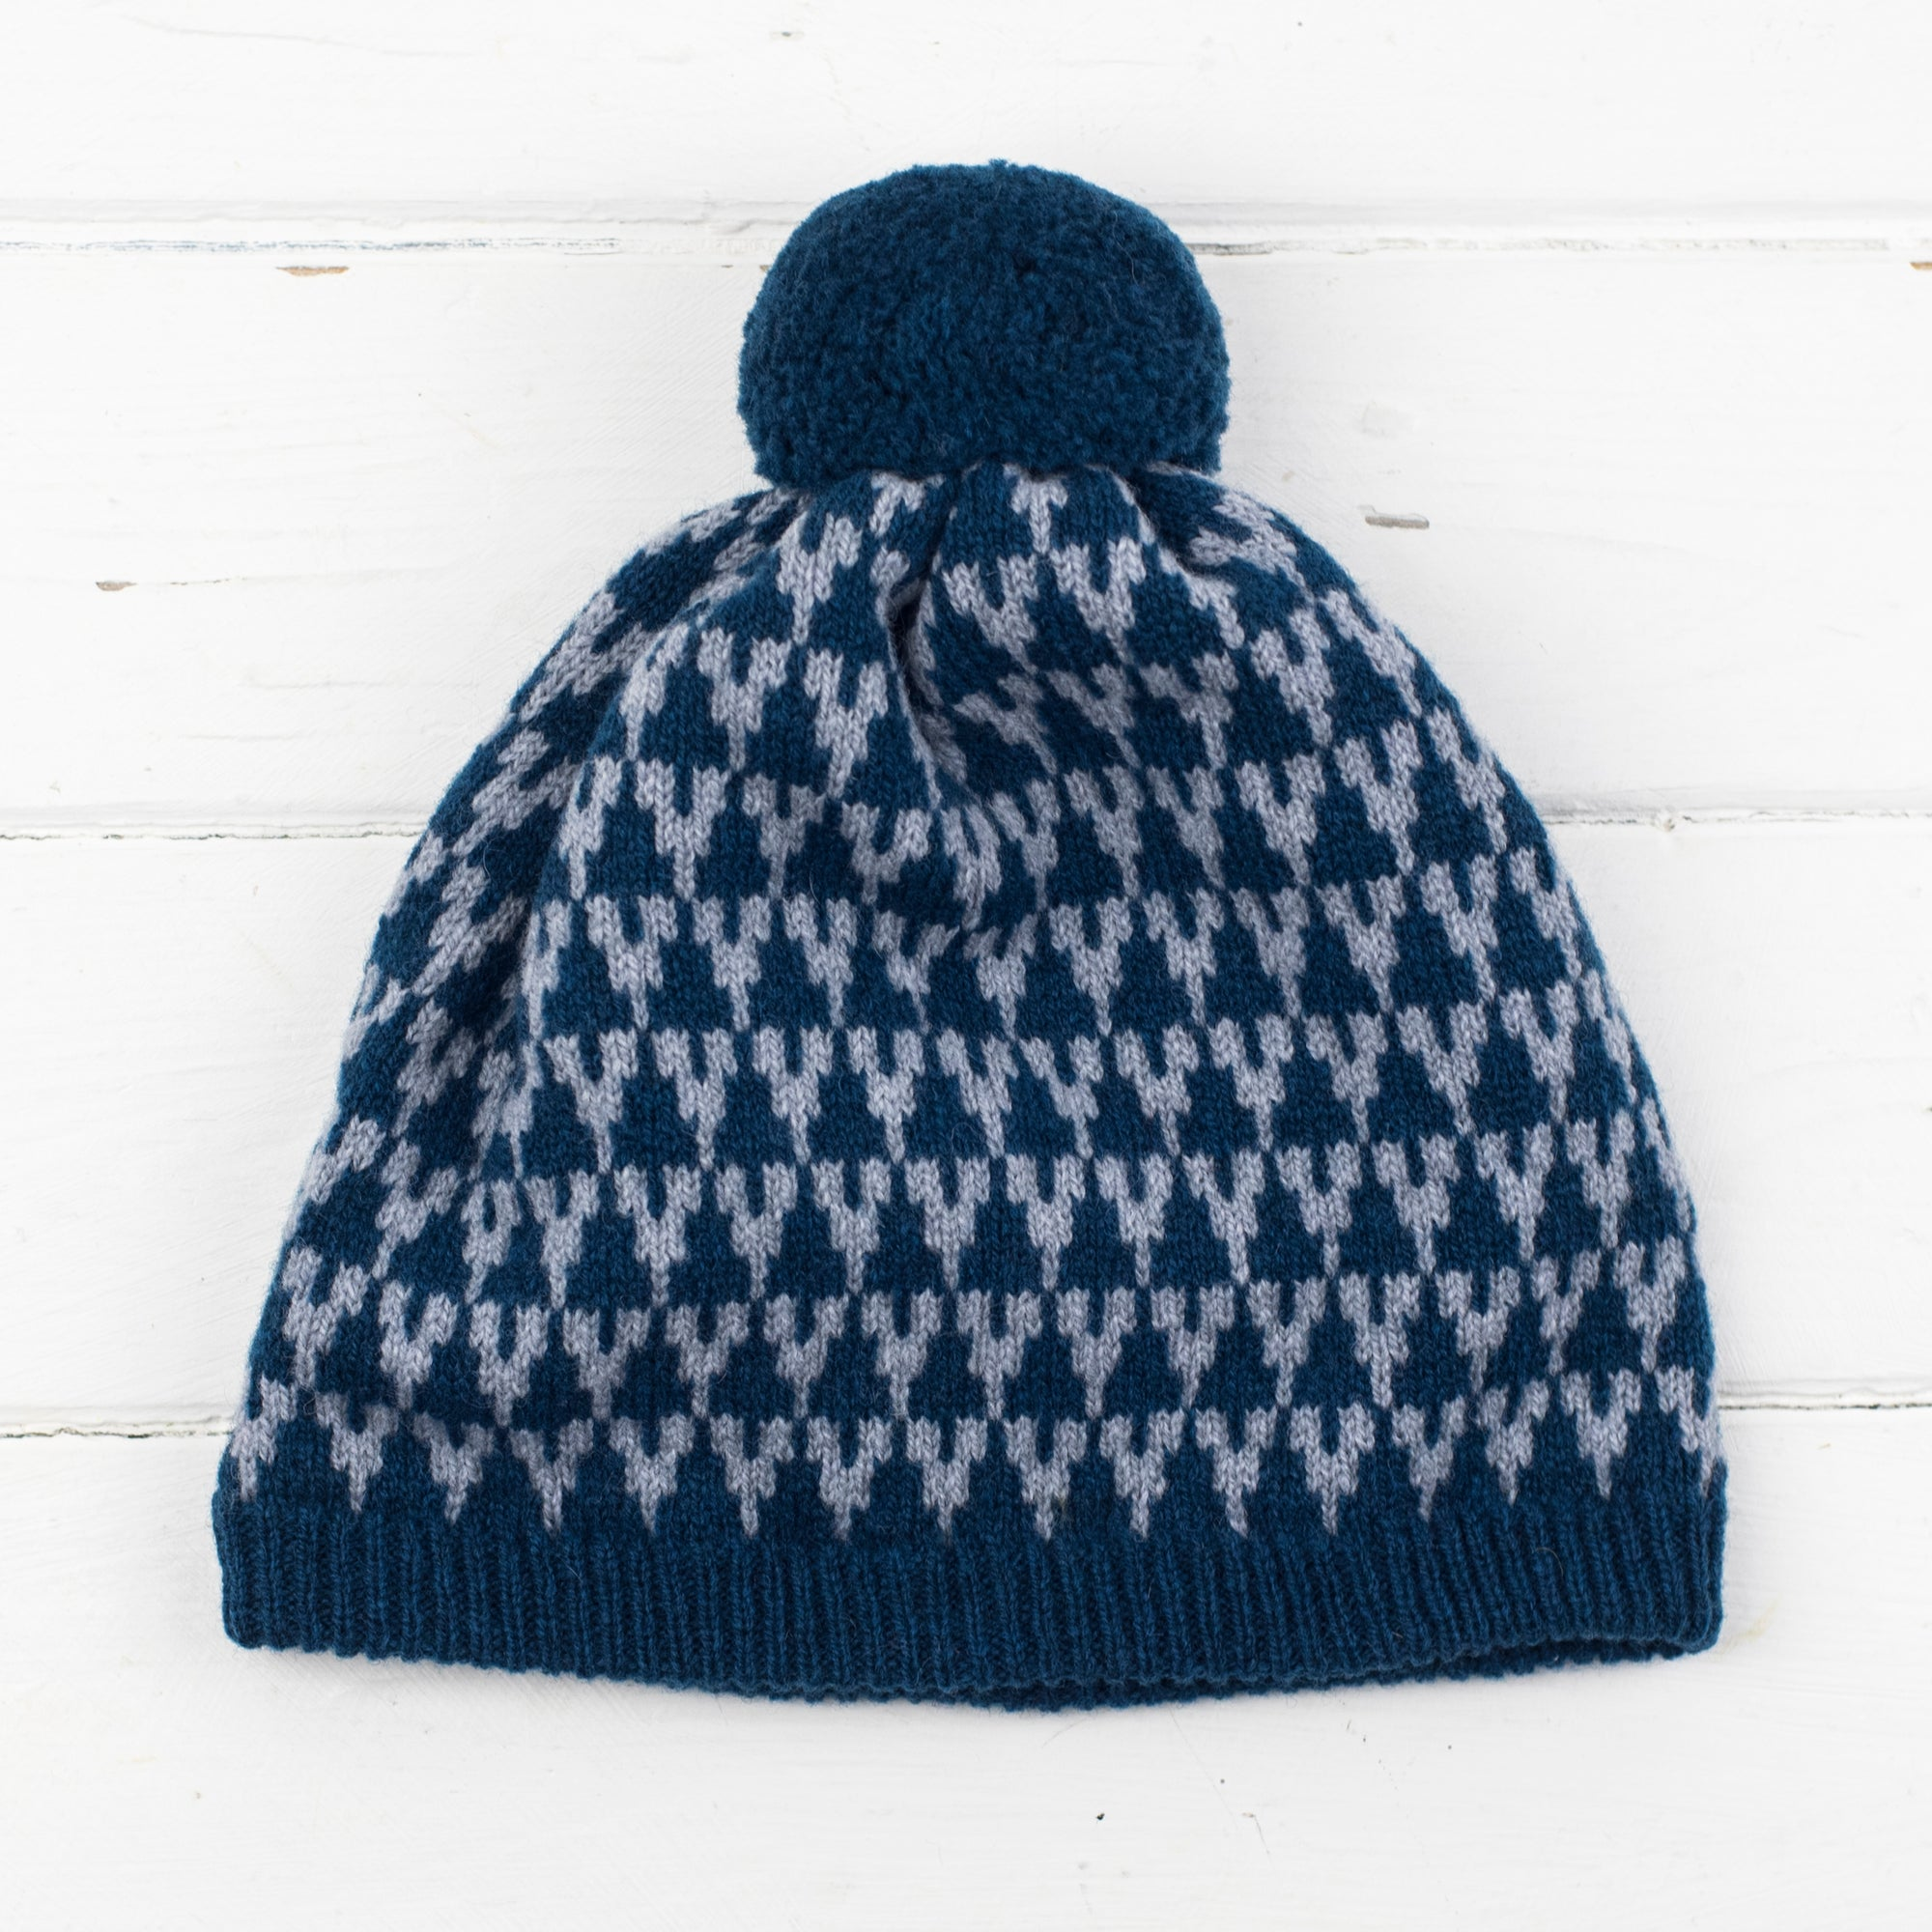 Arrow pom pom hat - diesel and seal